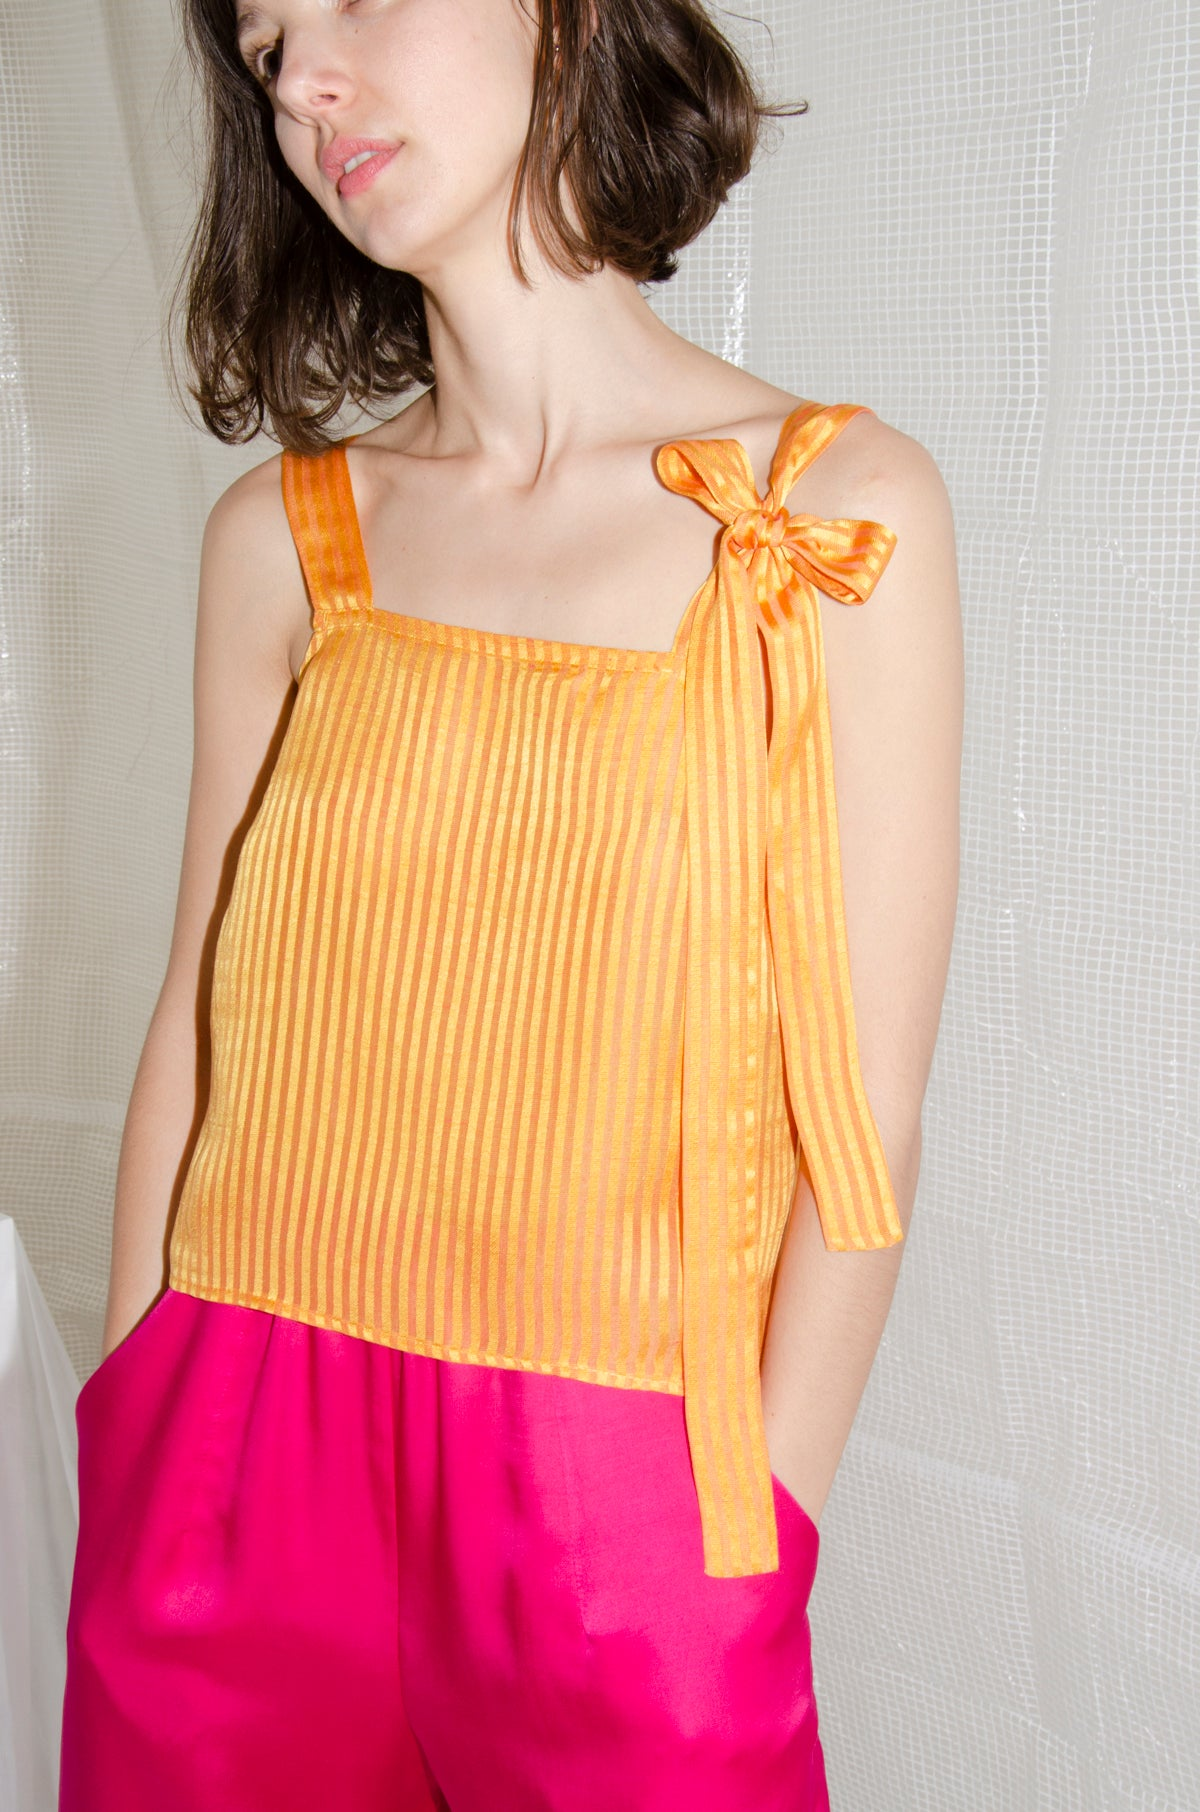 Tangerine Bow Camisole Top